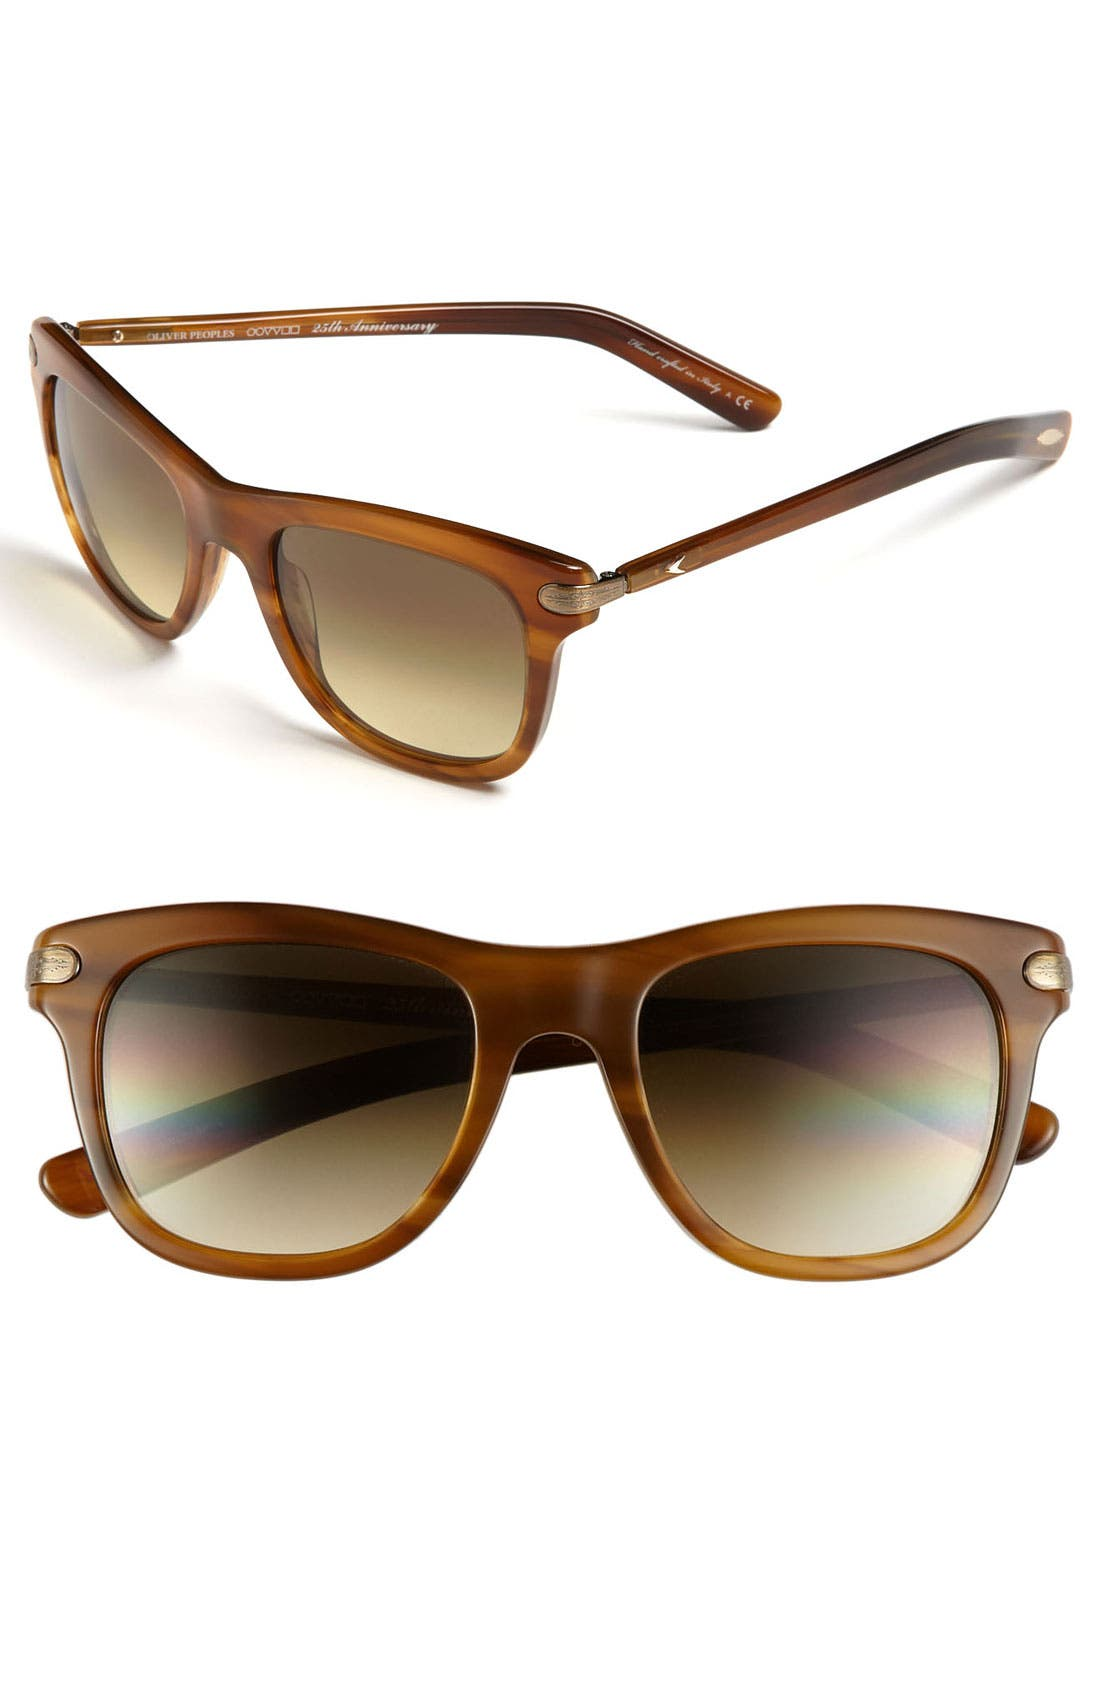 Main Image - Oliver Peoples 51mm Photochromatic Sunglasses